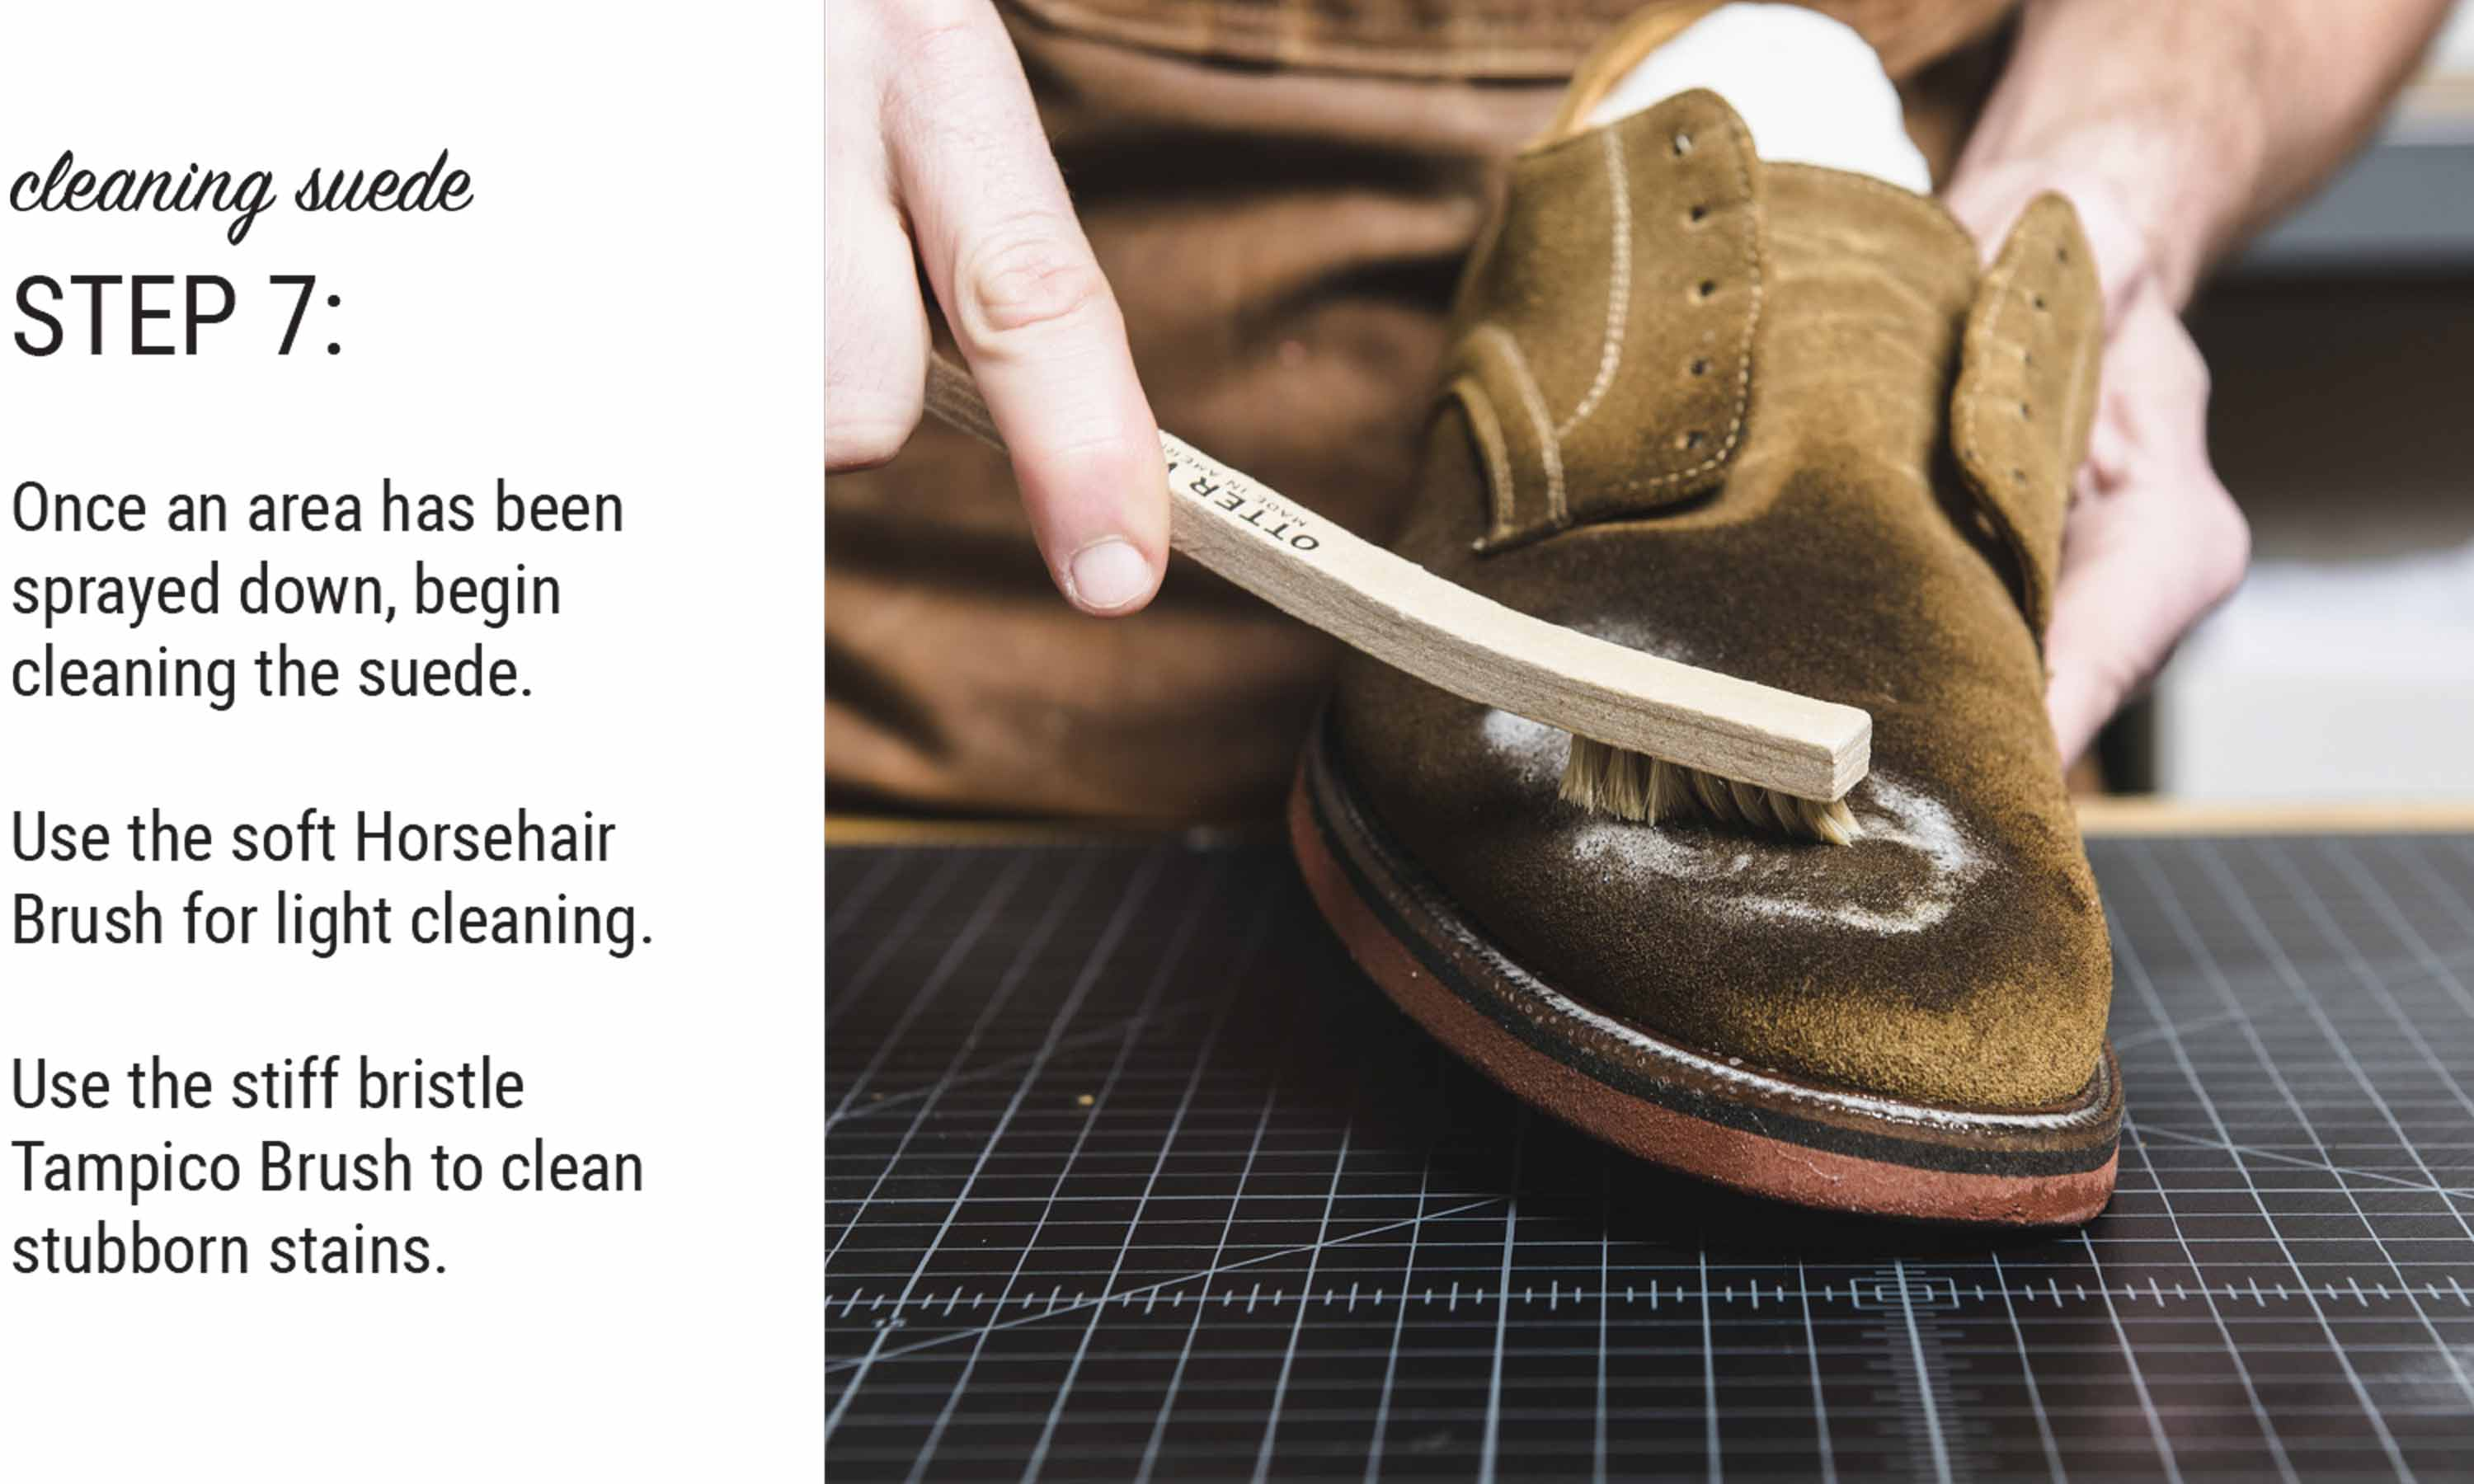 How To Clean Suede Shoes | Tutorial Guide – Otter Wax